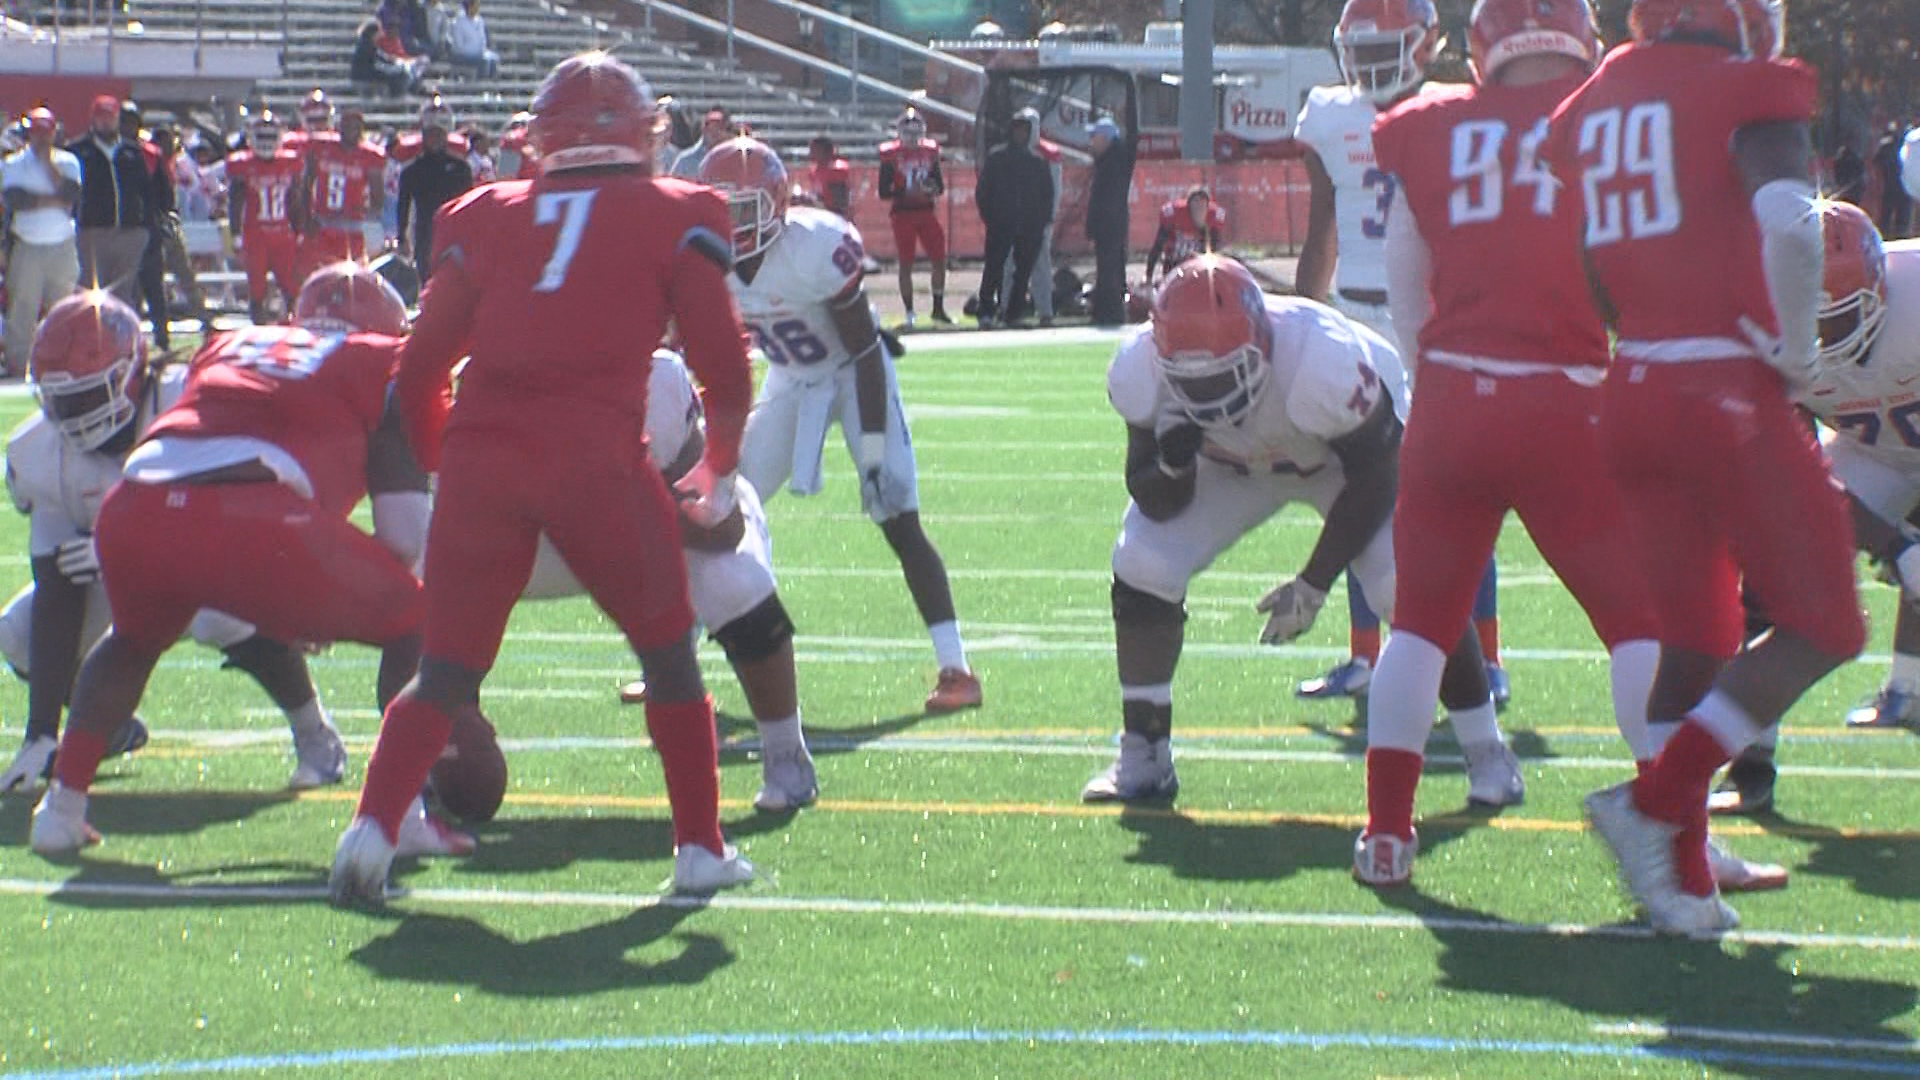 Delaware State's Cavicante Earns All-MEAC First Team